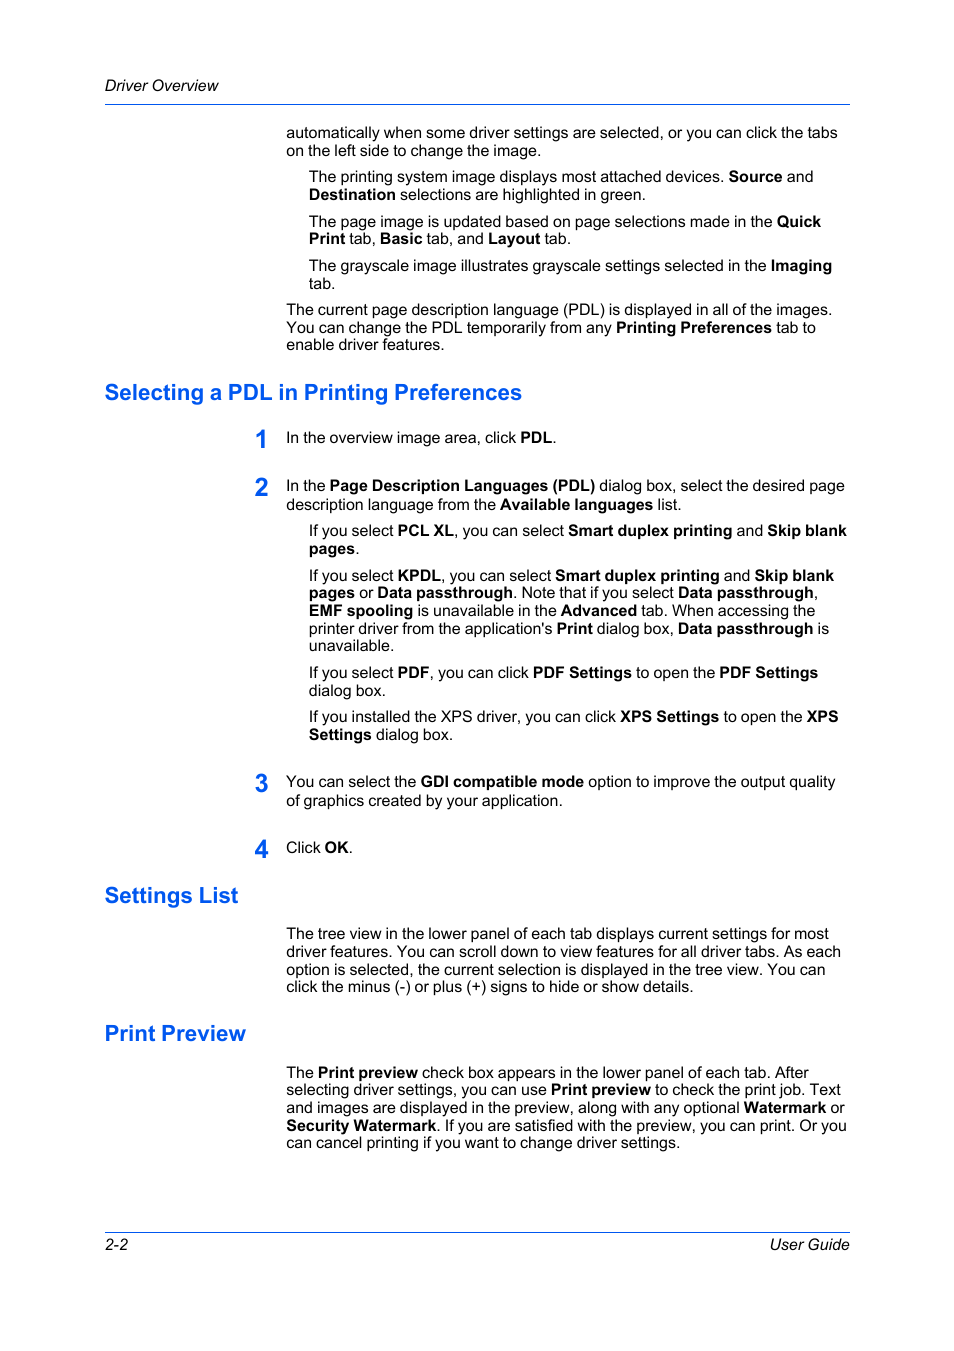 Selecting A Pdl In Printing Preferences Settings List Print Kyocera M 2040 Dn Preview Ecosys M2040dn